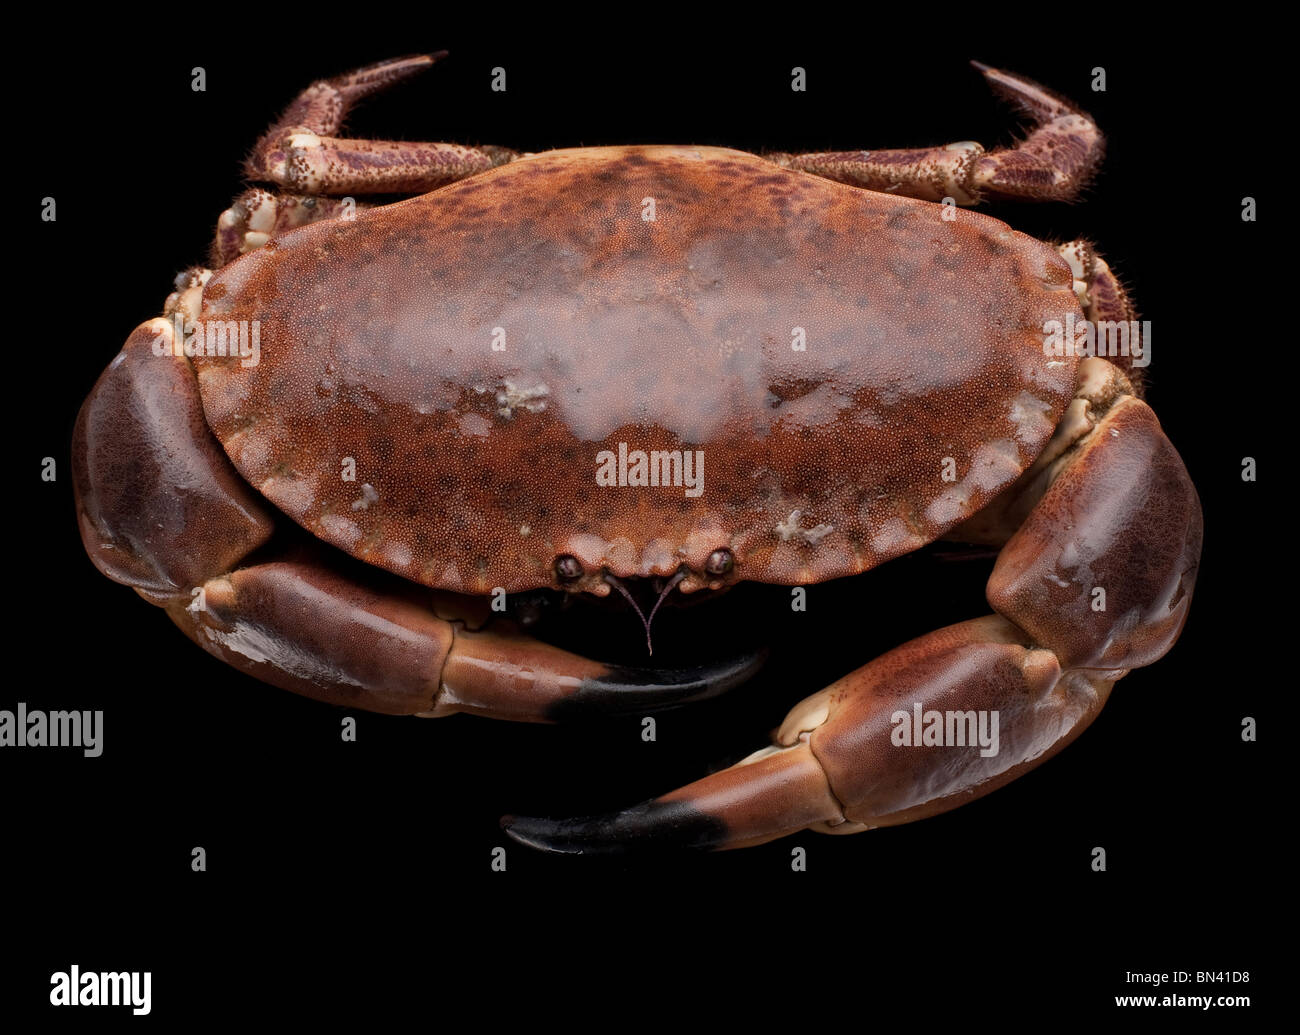 Live crab, decapod crustaceans of the infraorder Brachyura - Stock Image